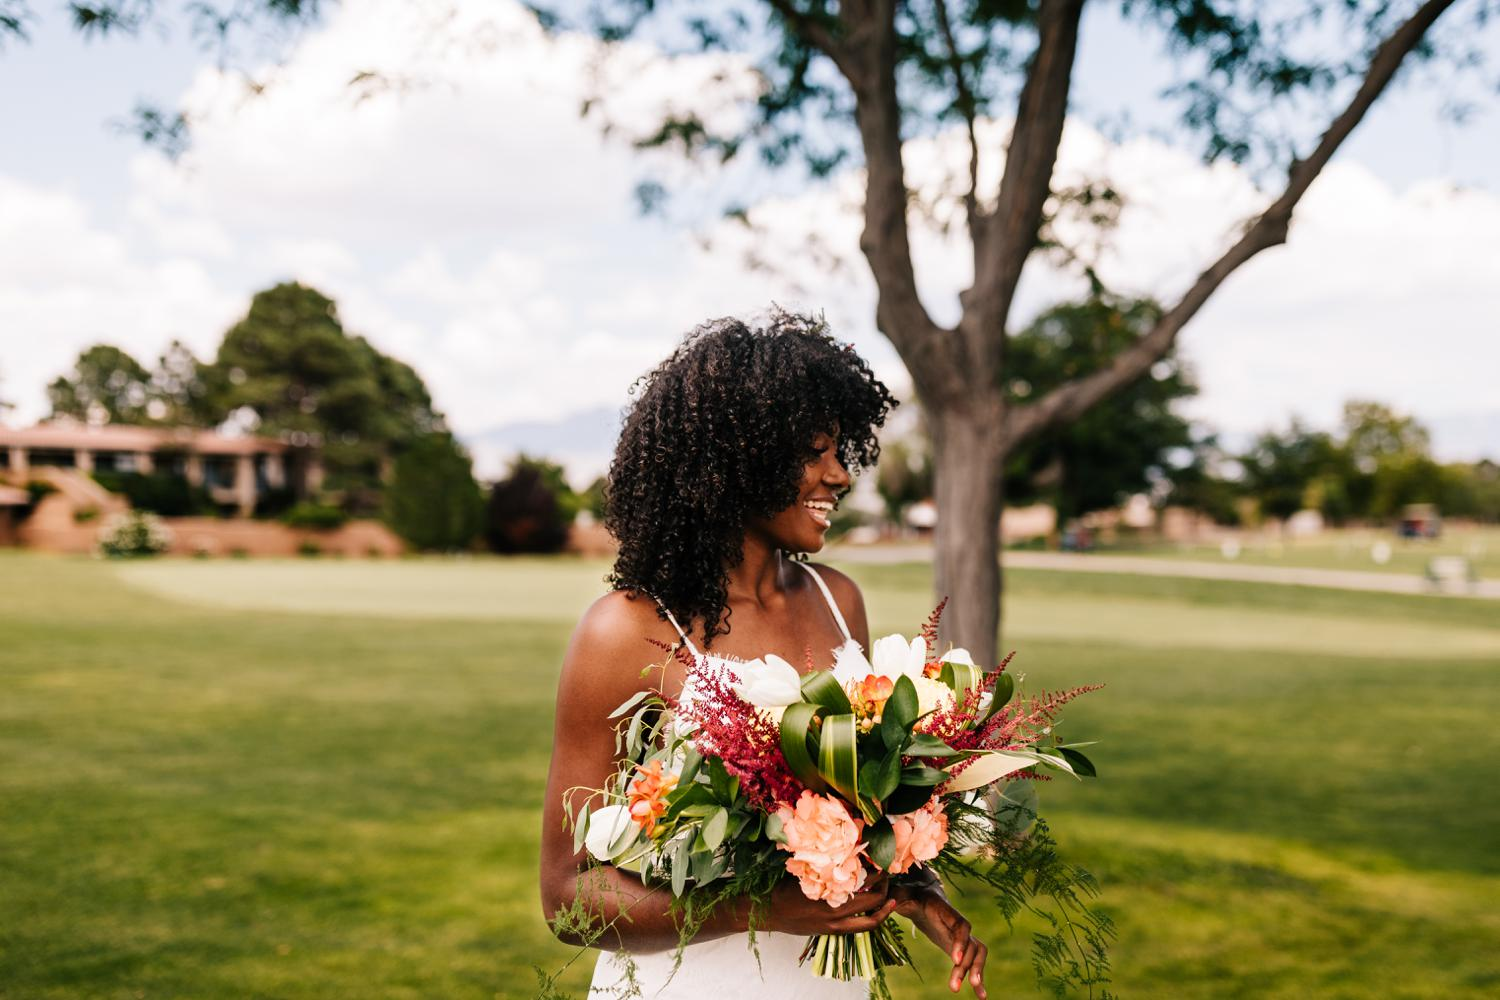 Smiling, happy bride with colorful bouquet in tropical themed Albuquerque wedding